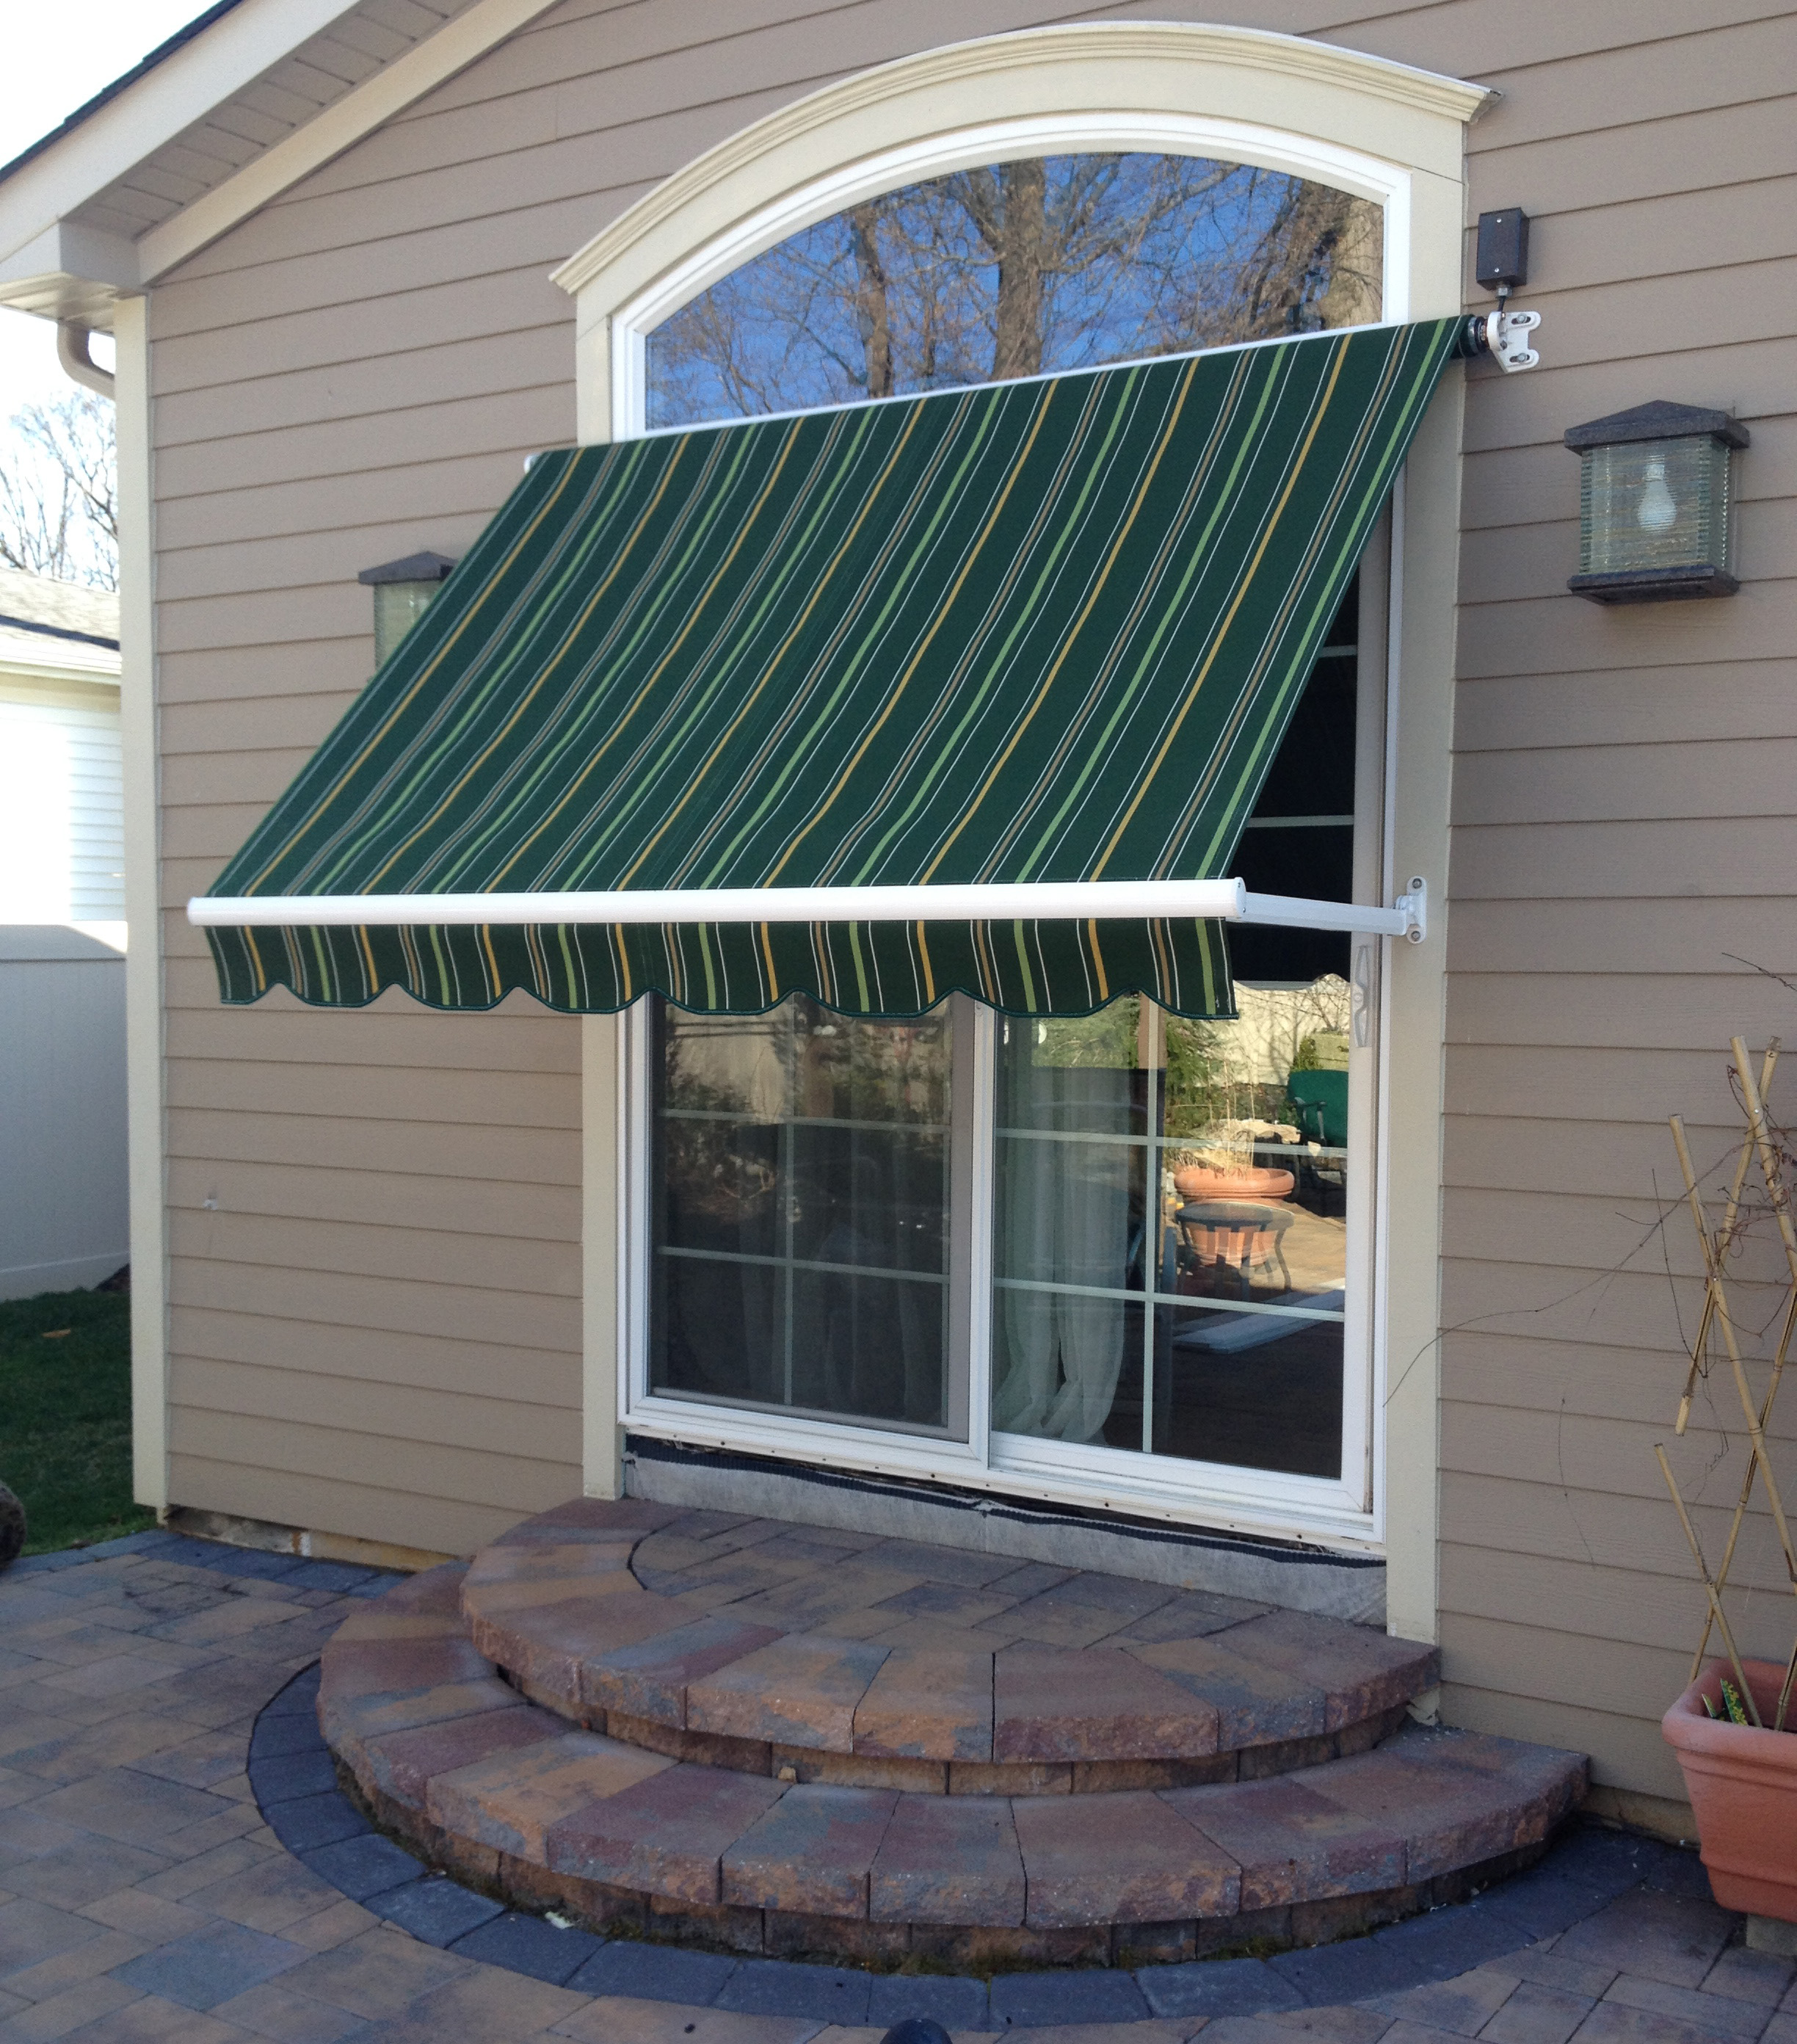 retractable by graphics nj works mount x ideas awnings awning durasol window inspirational roof triumph